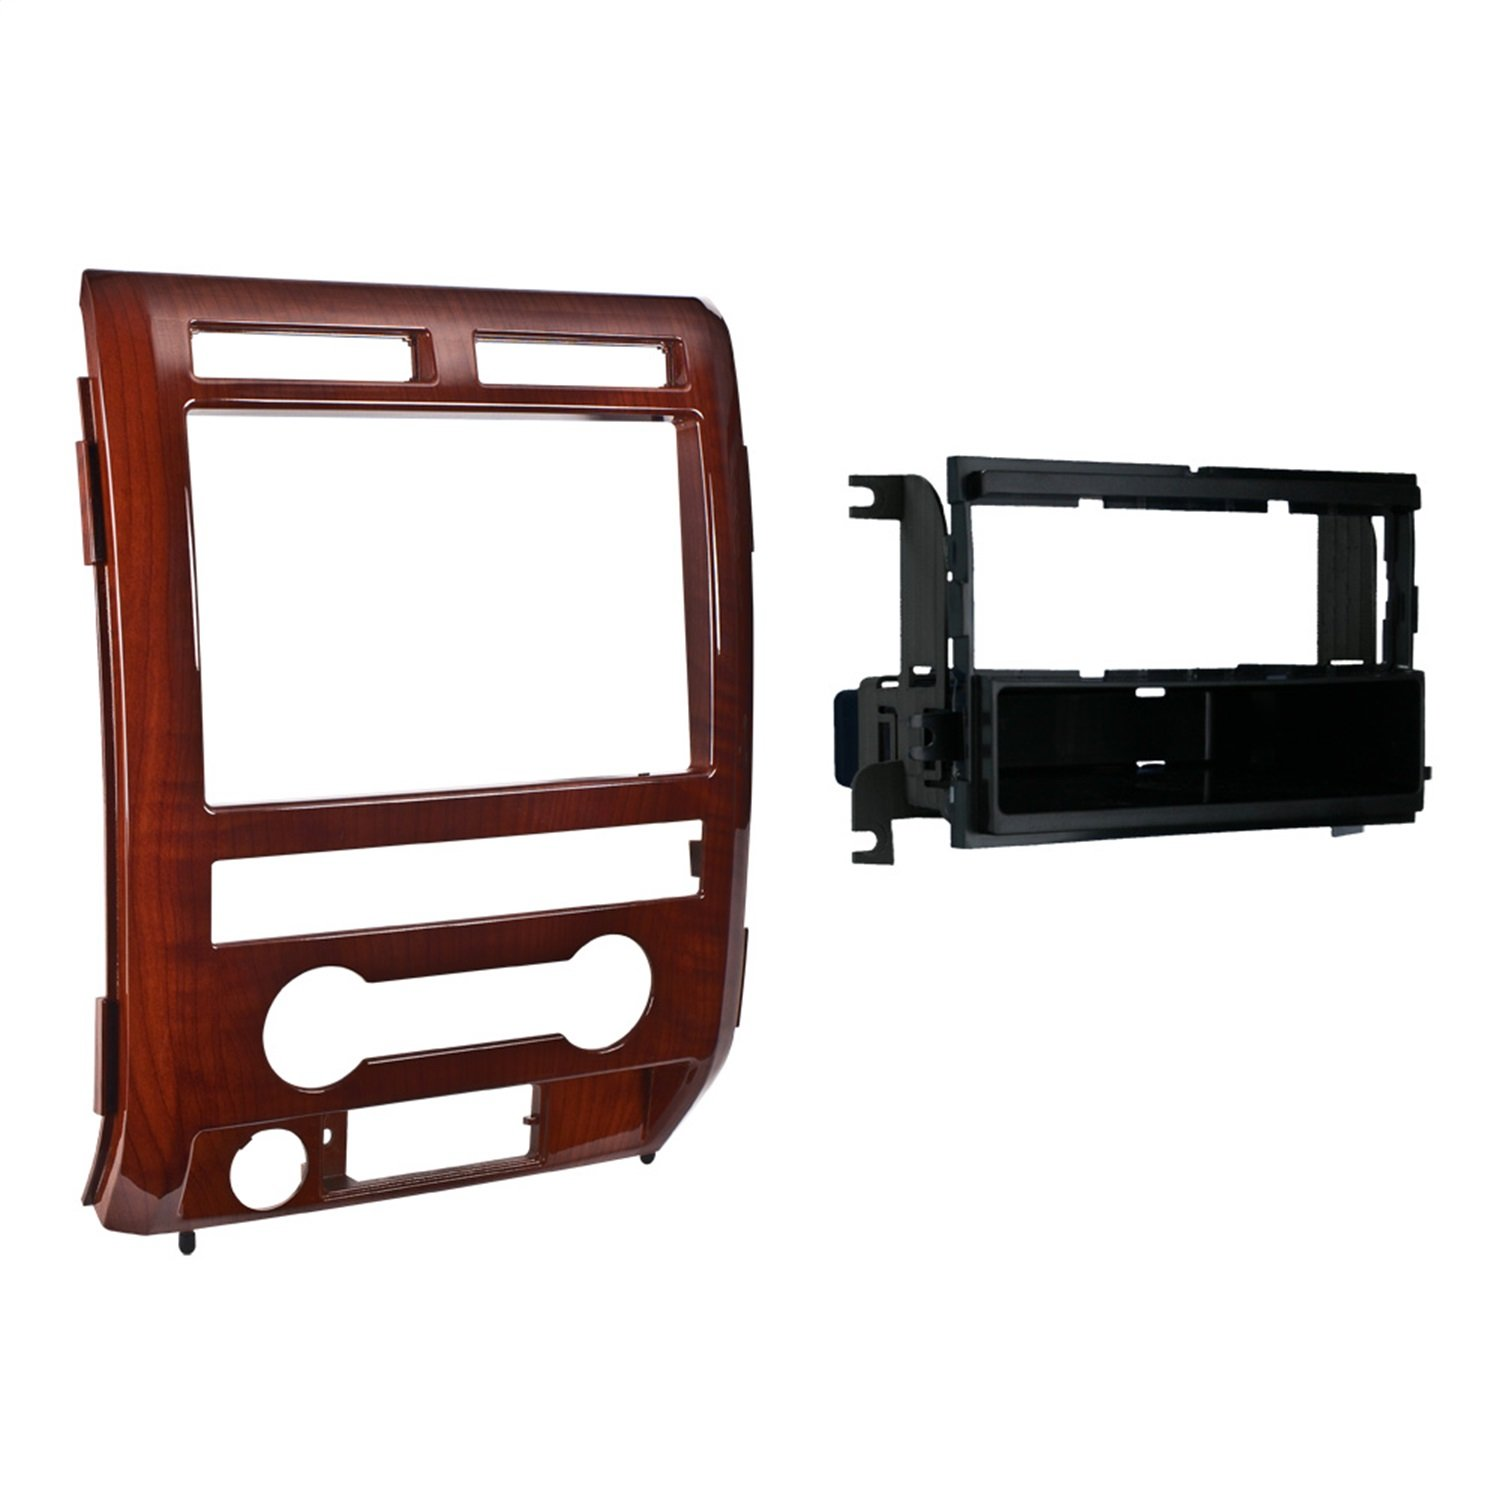 Metra 99-5822MM Single DIN Installation Dash Kit for 2009-2010 Ford F-150 Lariat, Midland Maple